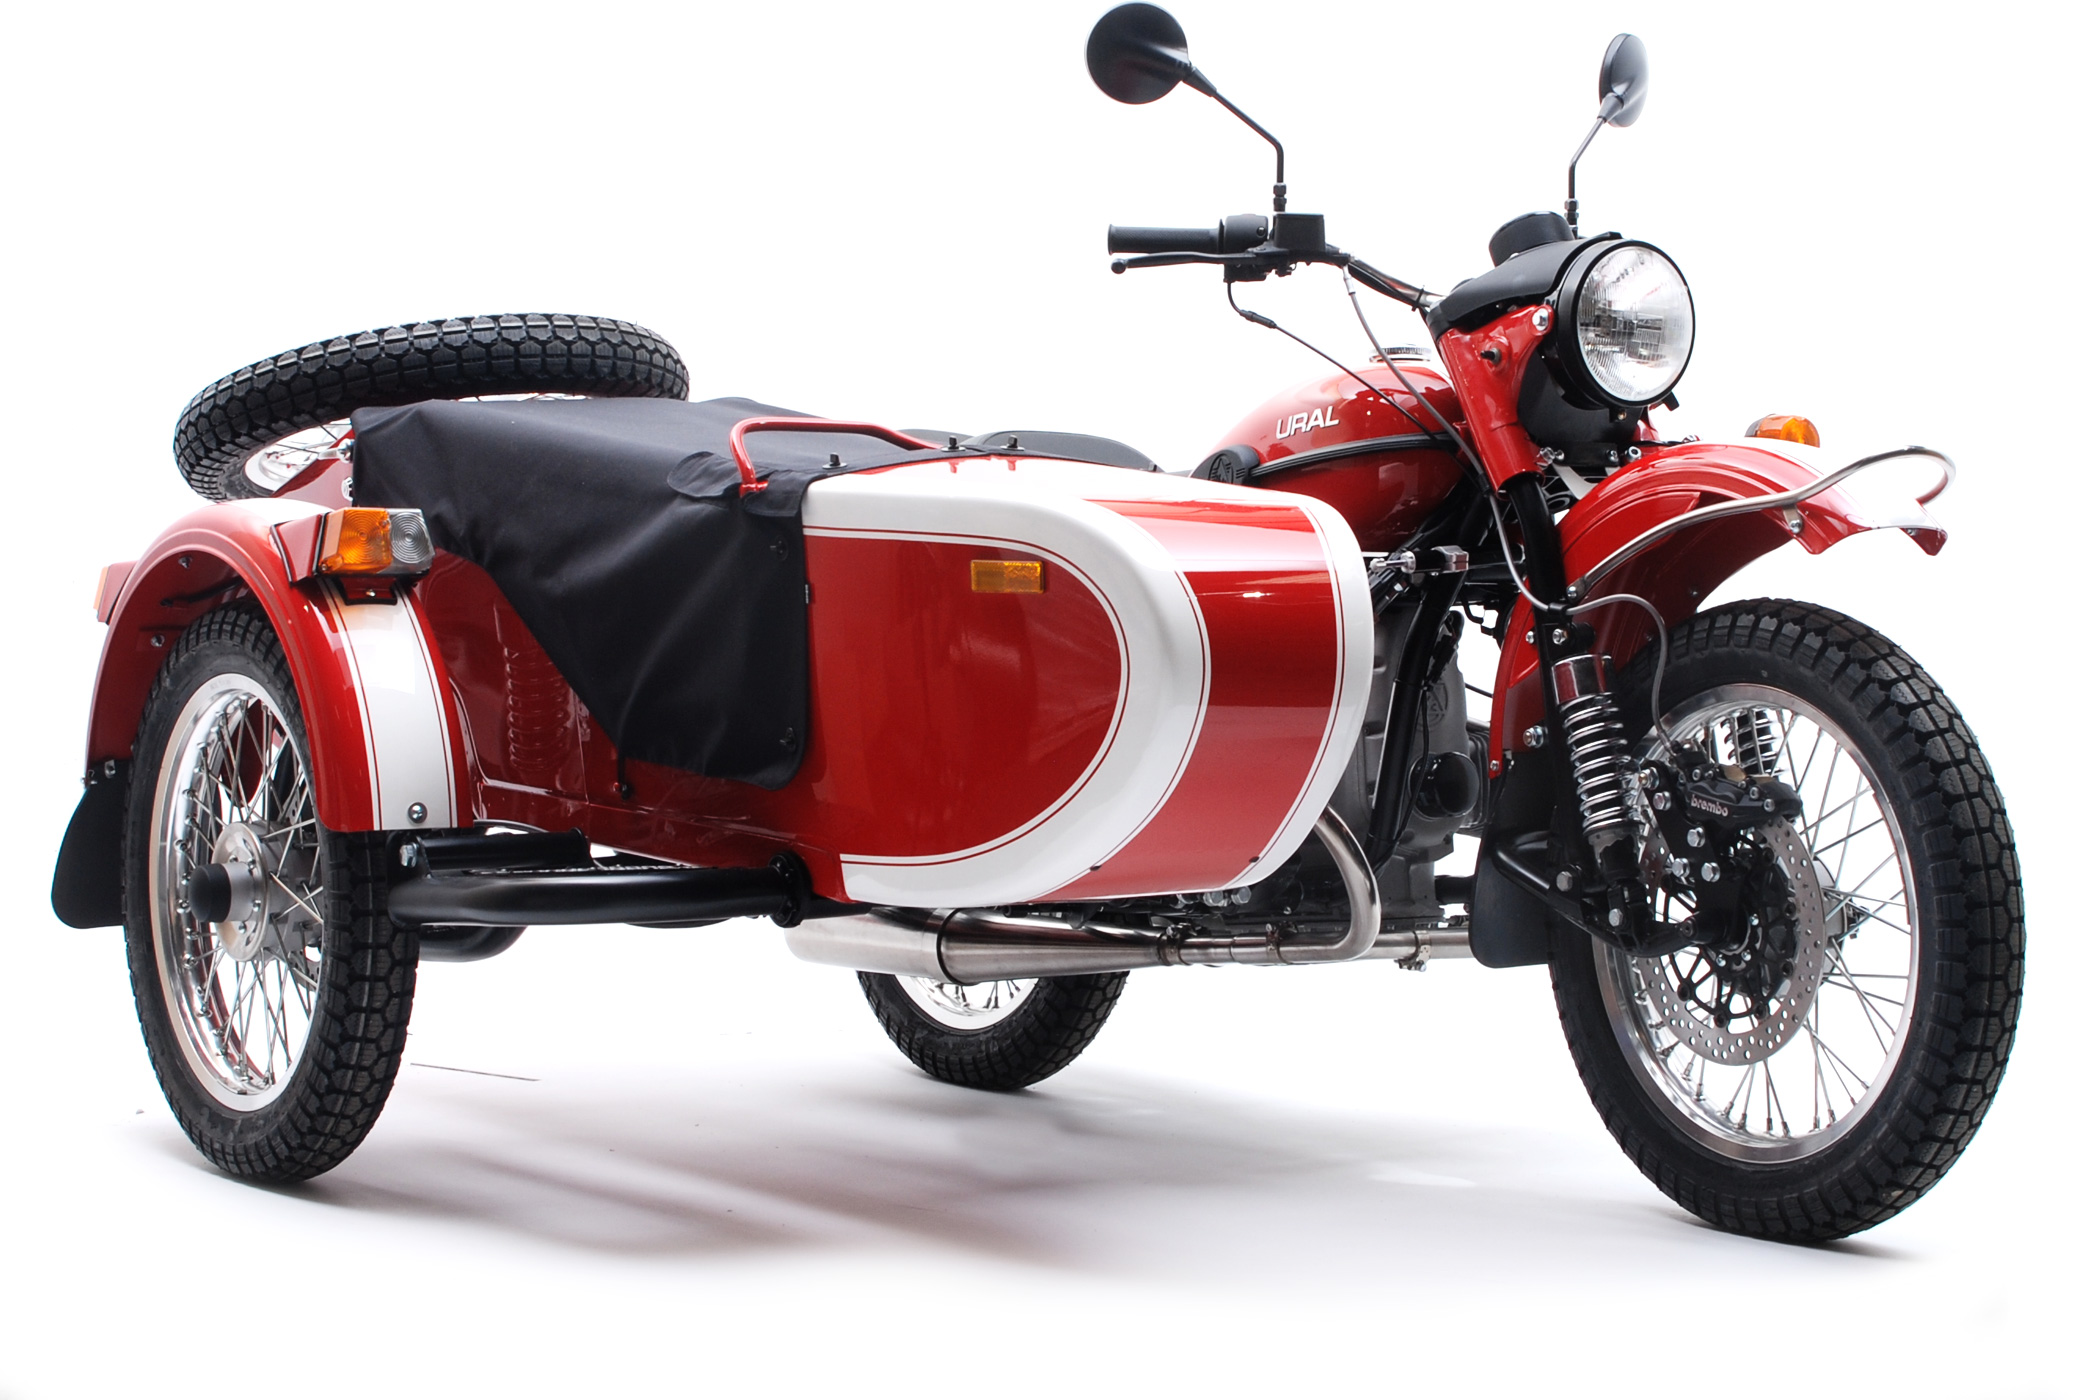 Ural sidecar) photo - 5